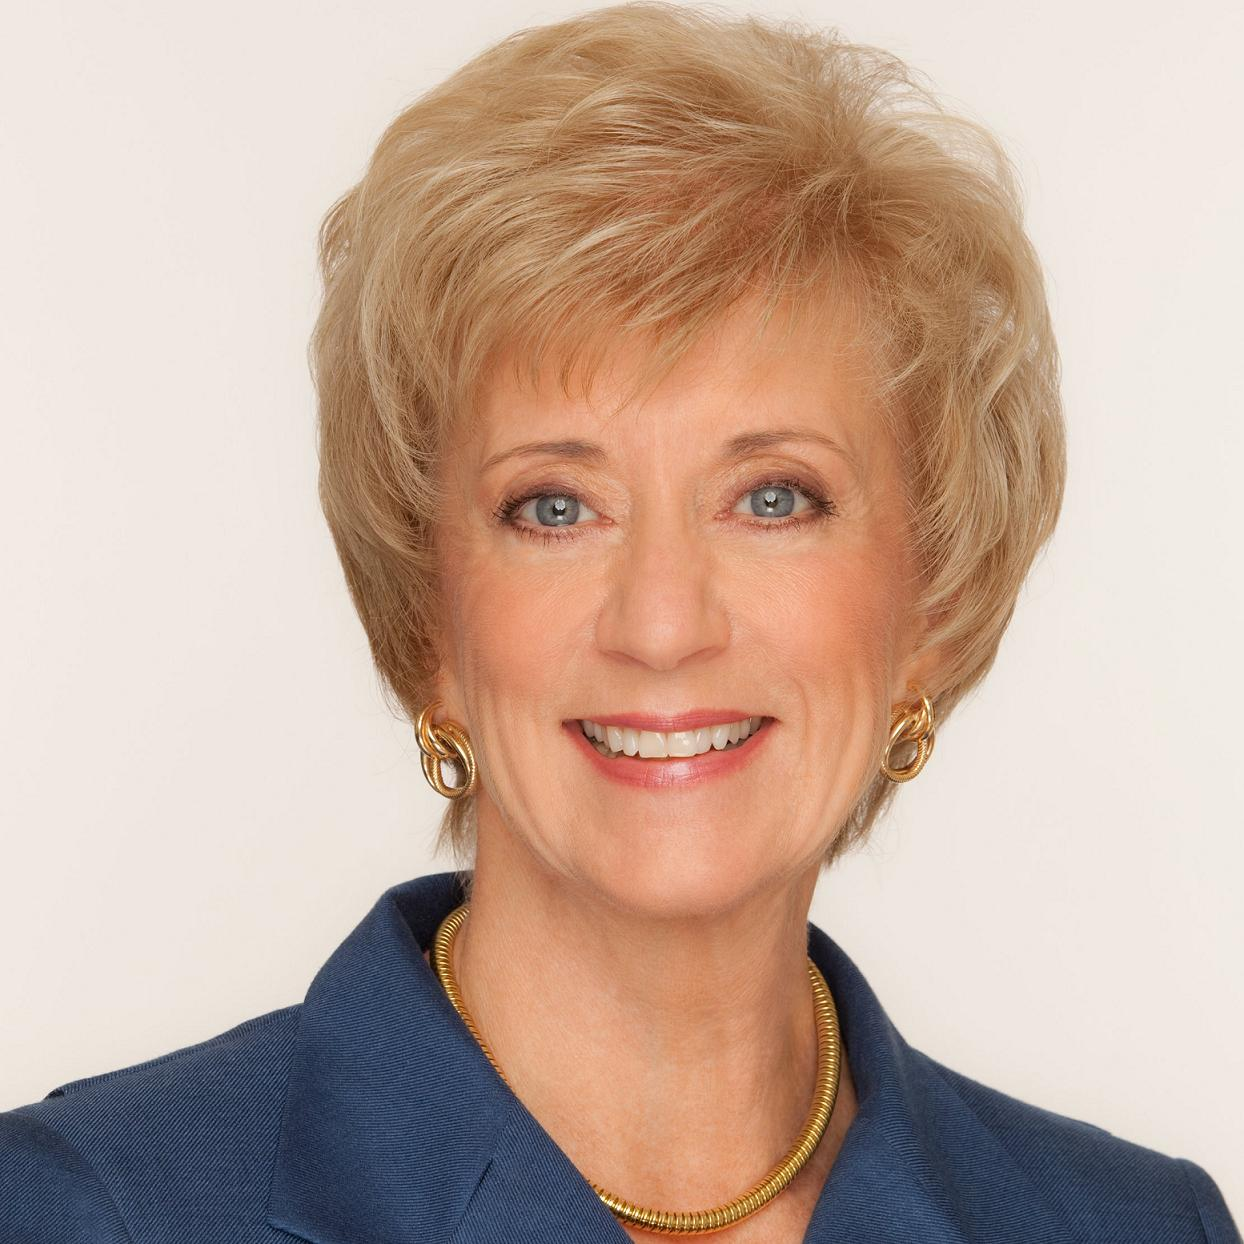 Linda McMahon | Bio, Net Worth, Facts